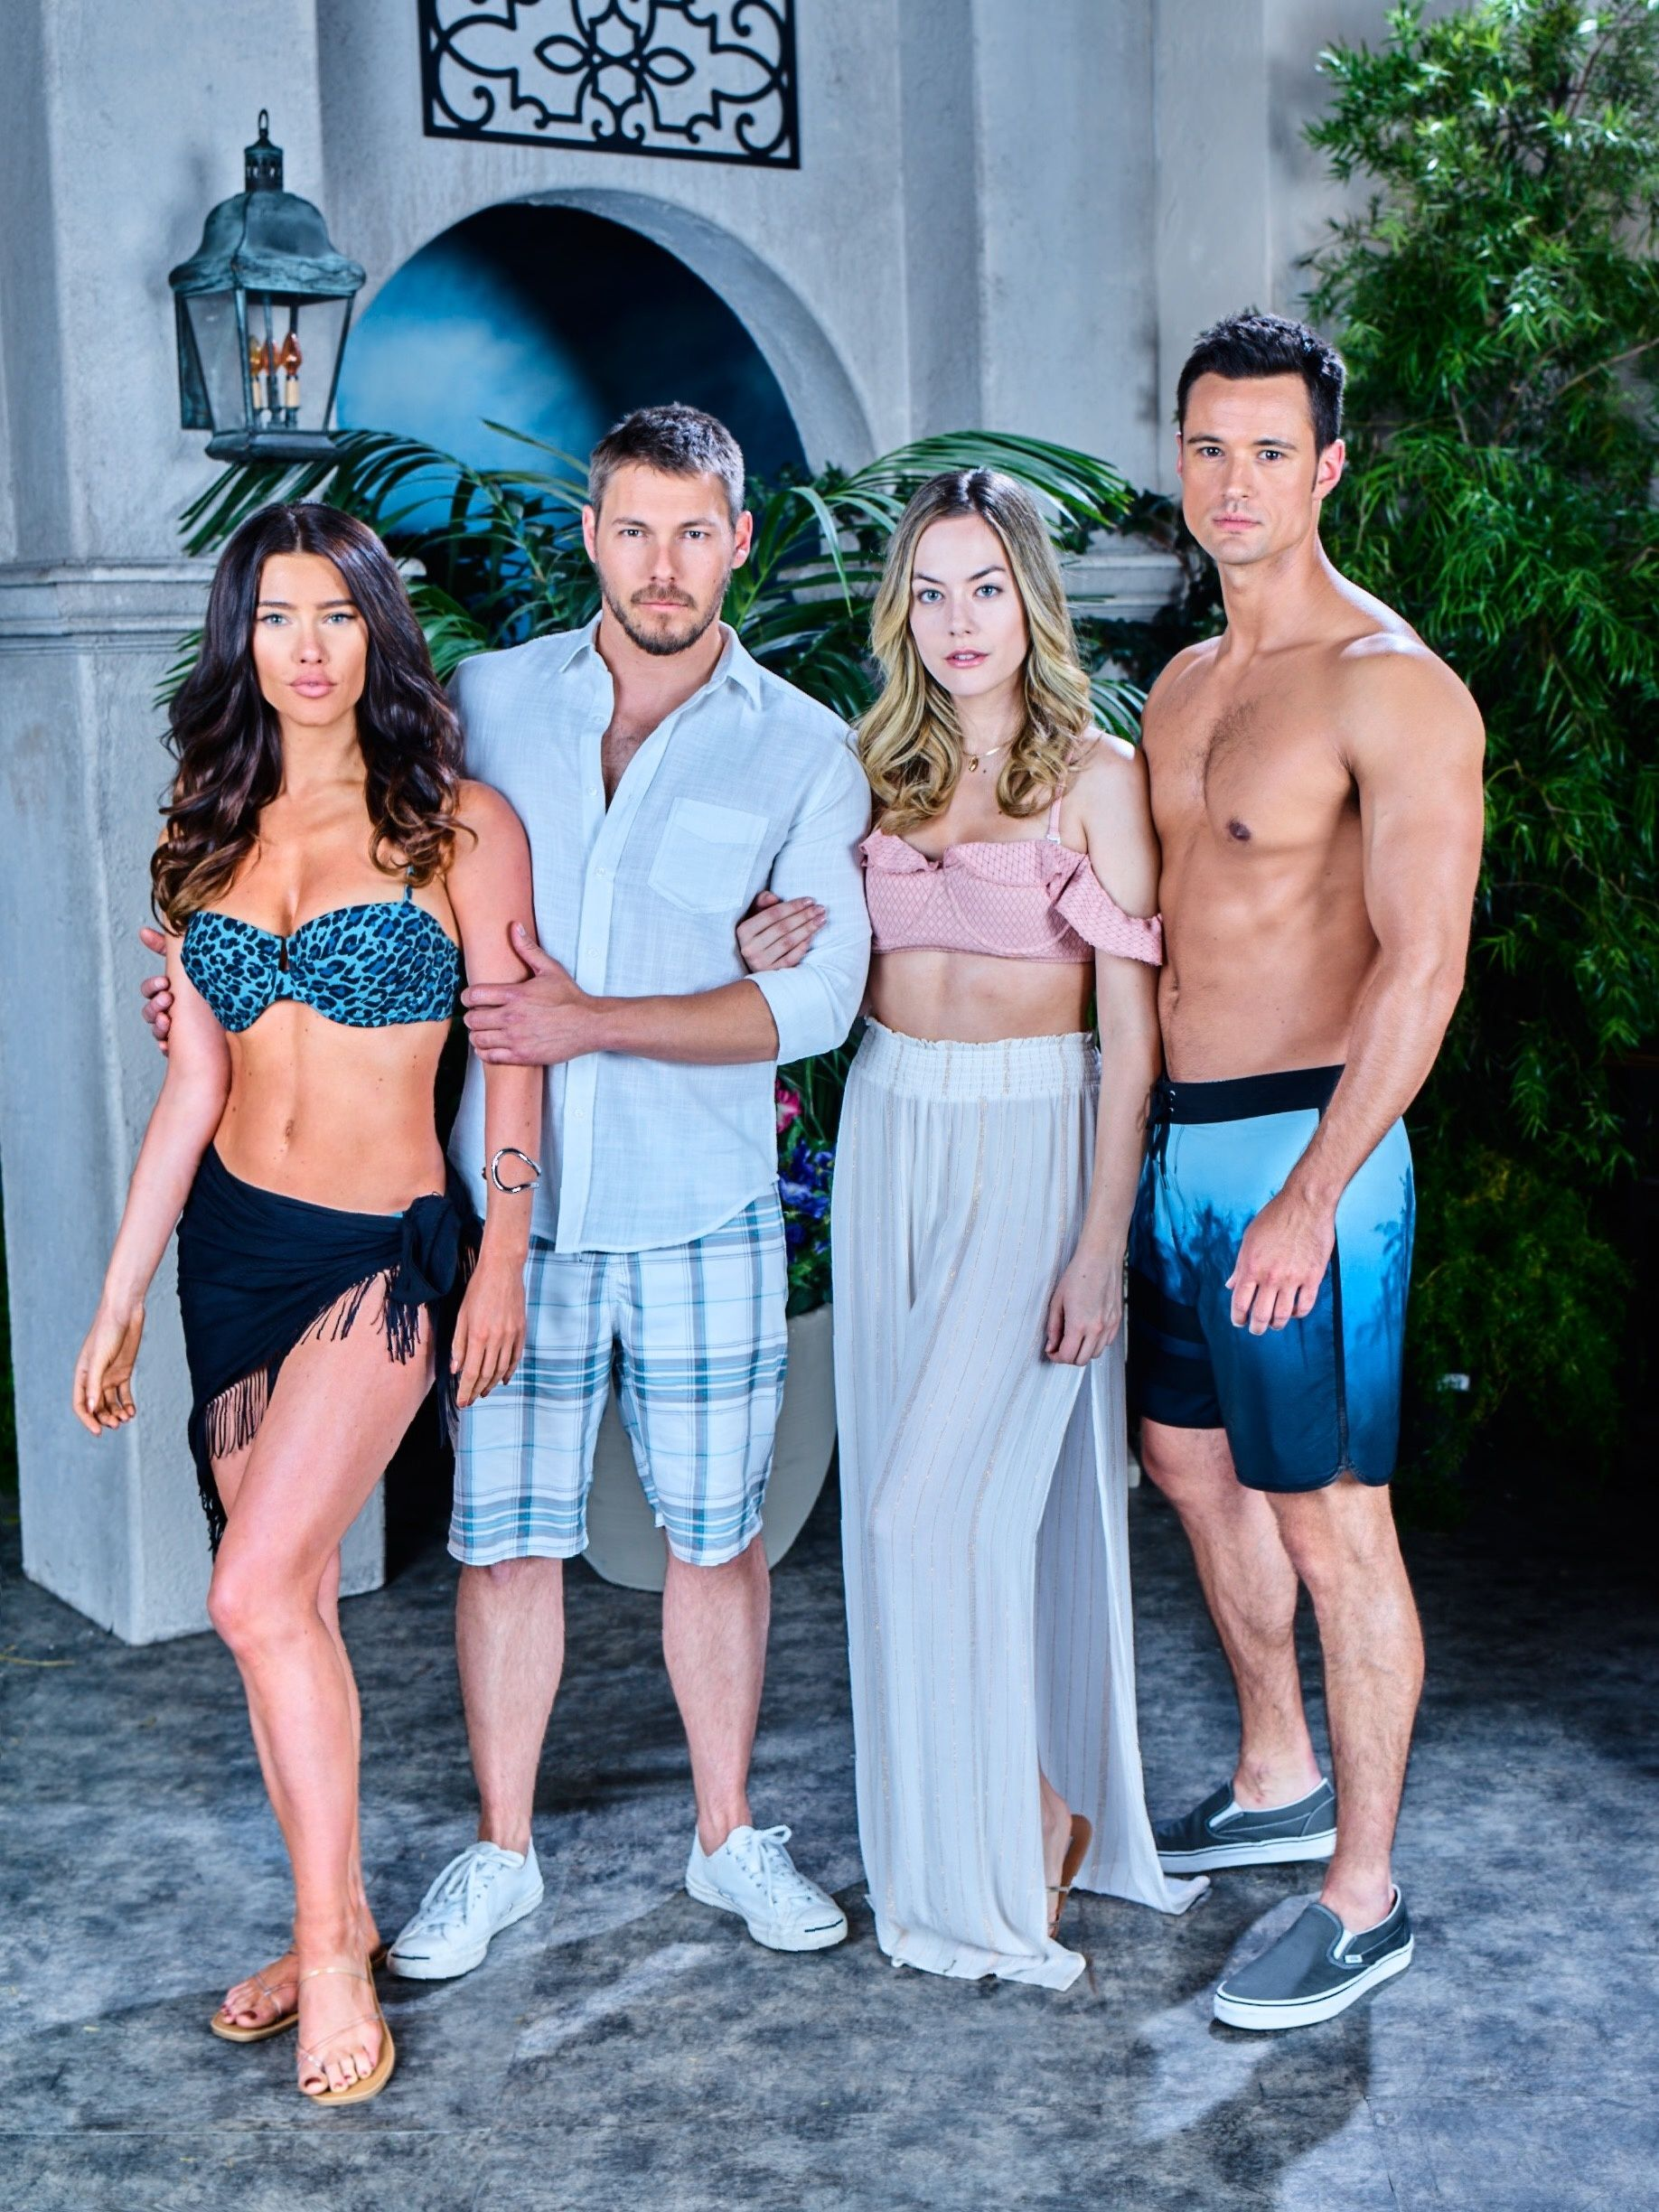 Jacqueline MacInnes Wood, Scott Clifton, Annika Noelle, and Matthew Atkinson against a backdrop of palms and an arched doorway